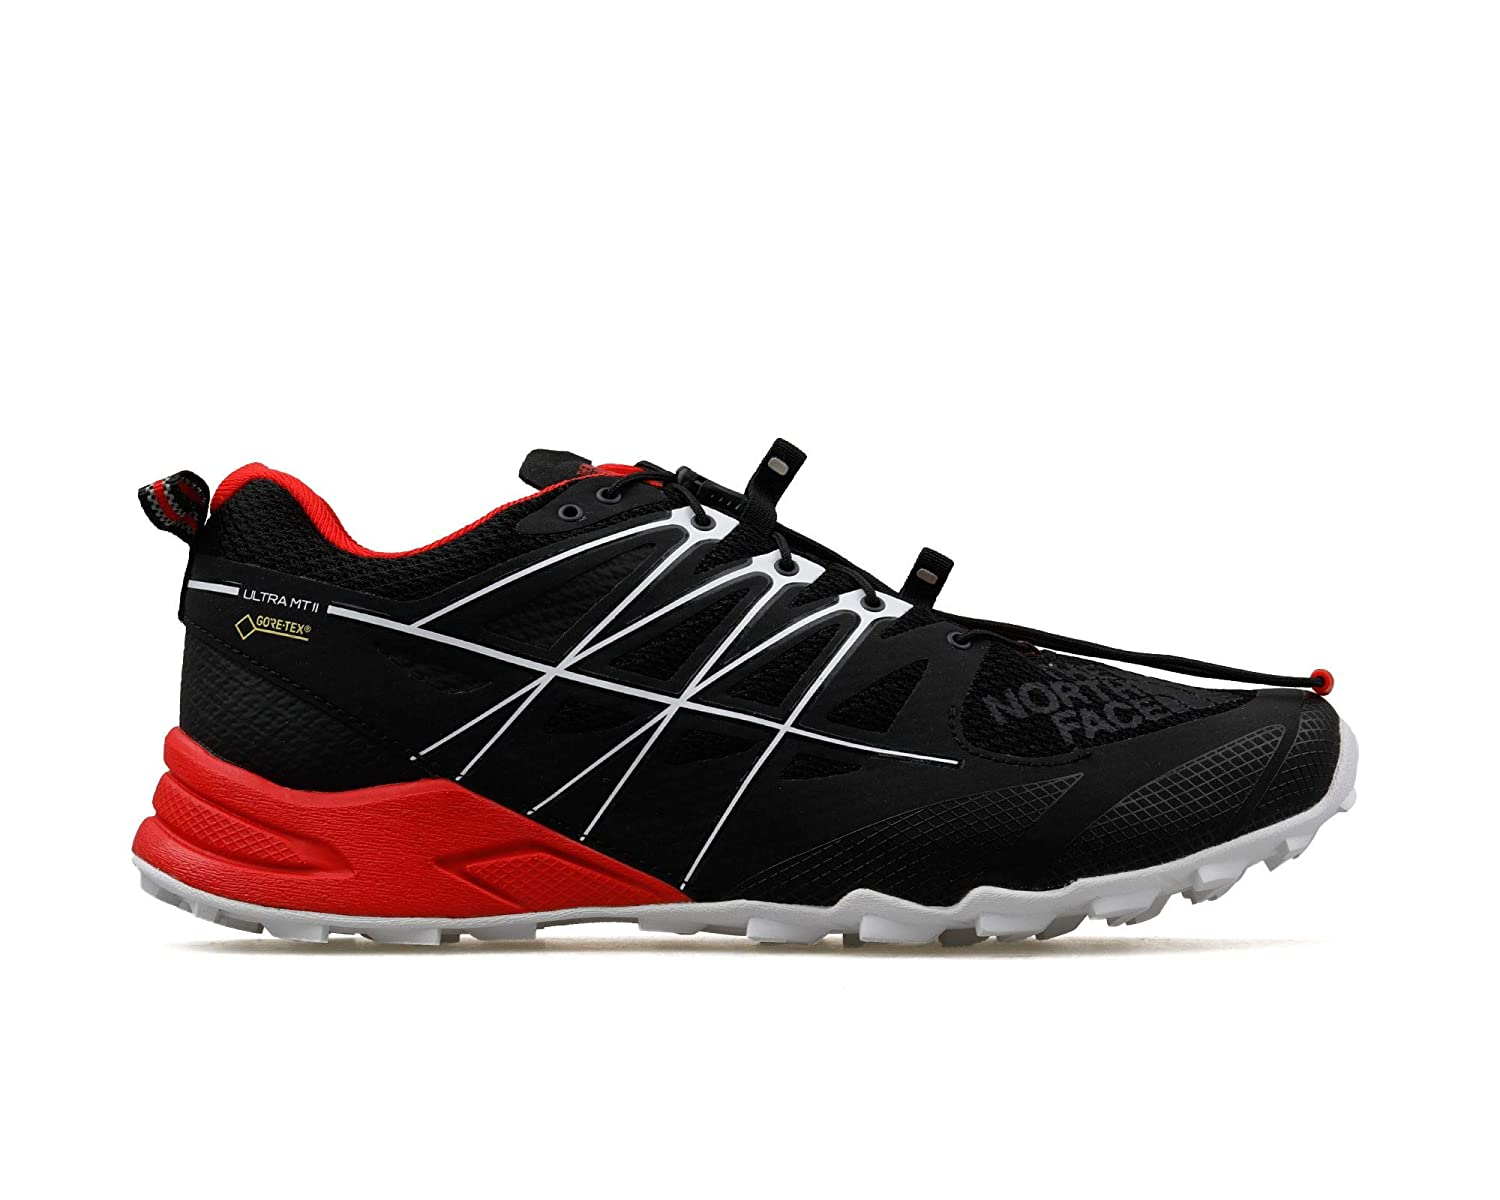 The North Ii Face M Ultra Mt Ii North Gtx Tnf schwarz Fiery ROT 9H US d64395